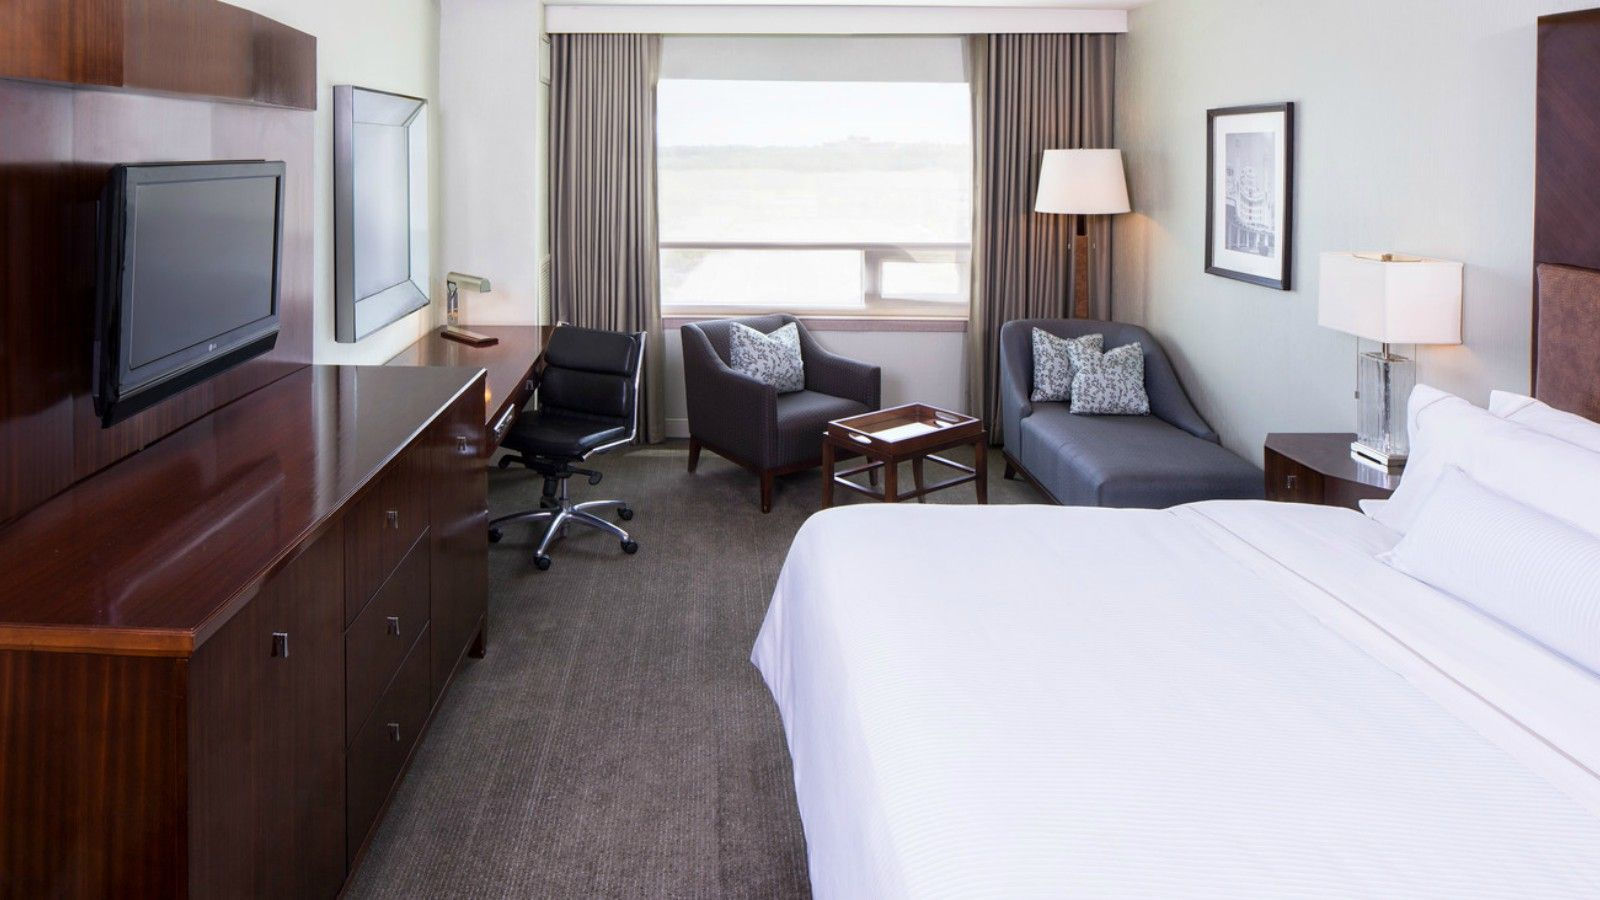 Family-Friendly Hotel Rooms in Mount Laurel - The Westin Mount Laurel